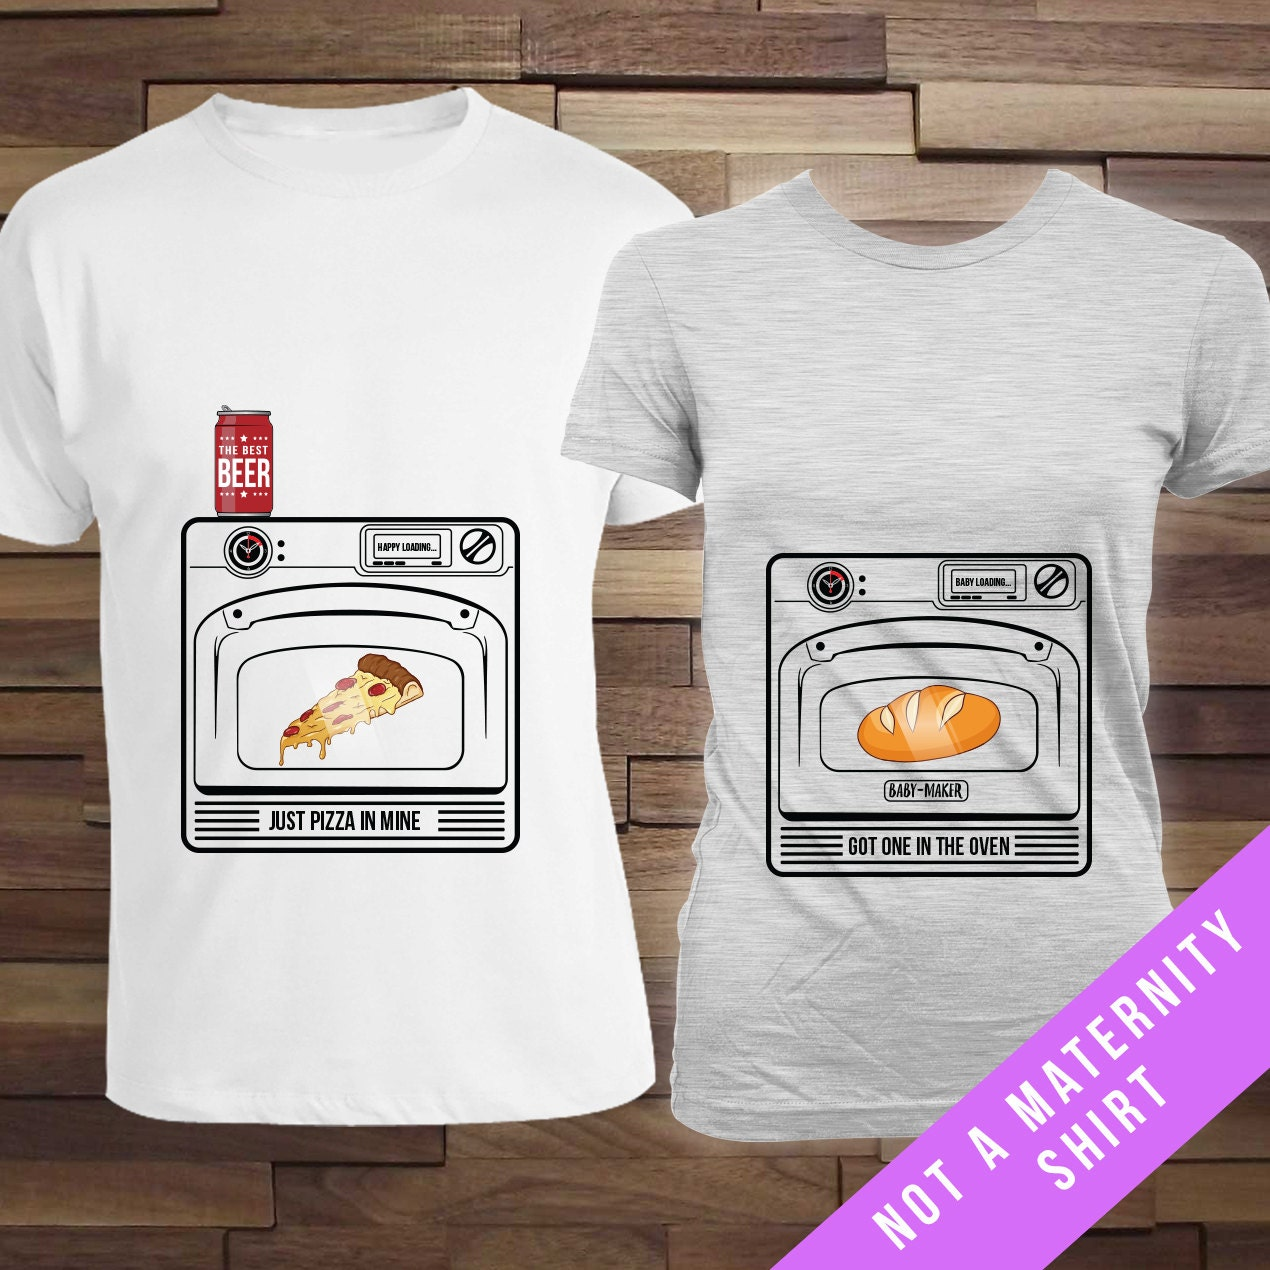 Bun in the Oven Pizza in Mine MomDad Matching Set new momnew – Bun in the Oven Baby Announcement